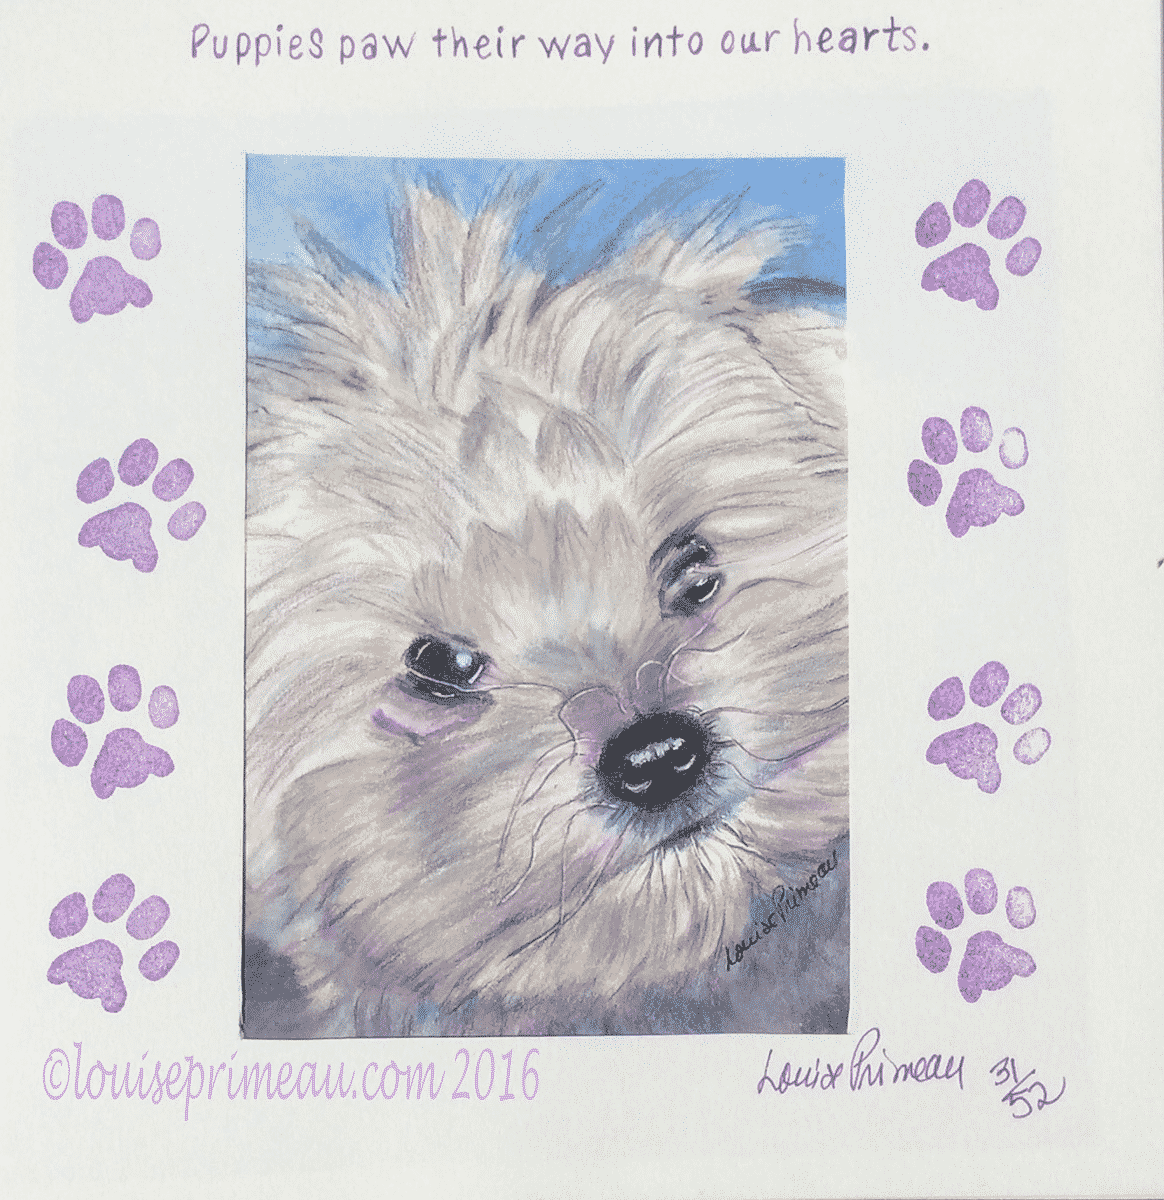 gratitude journal entry for our pets, our perfect companions